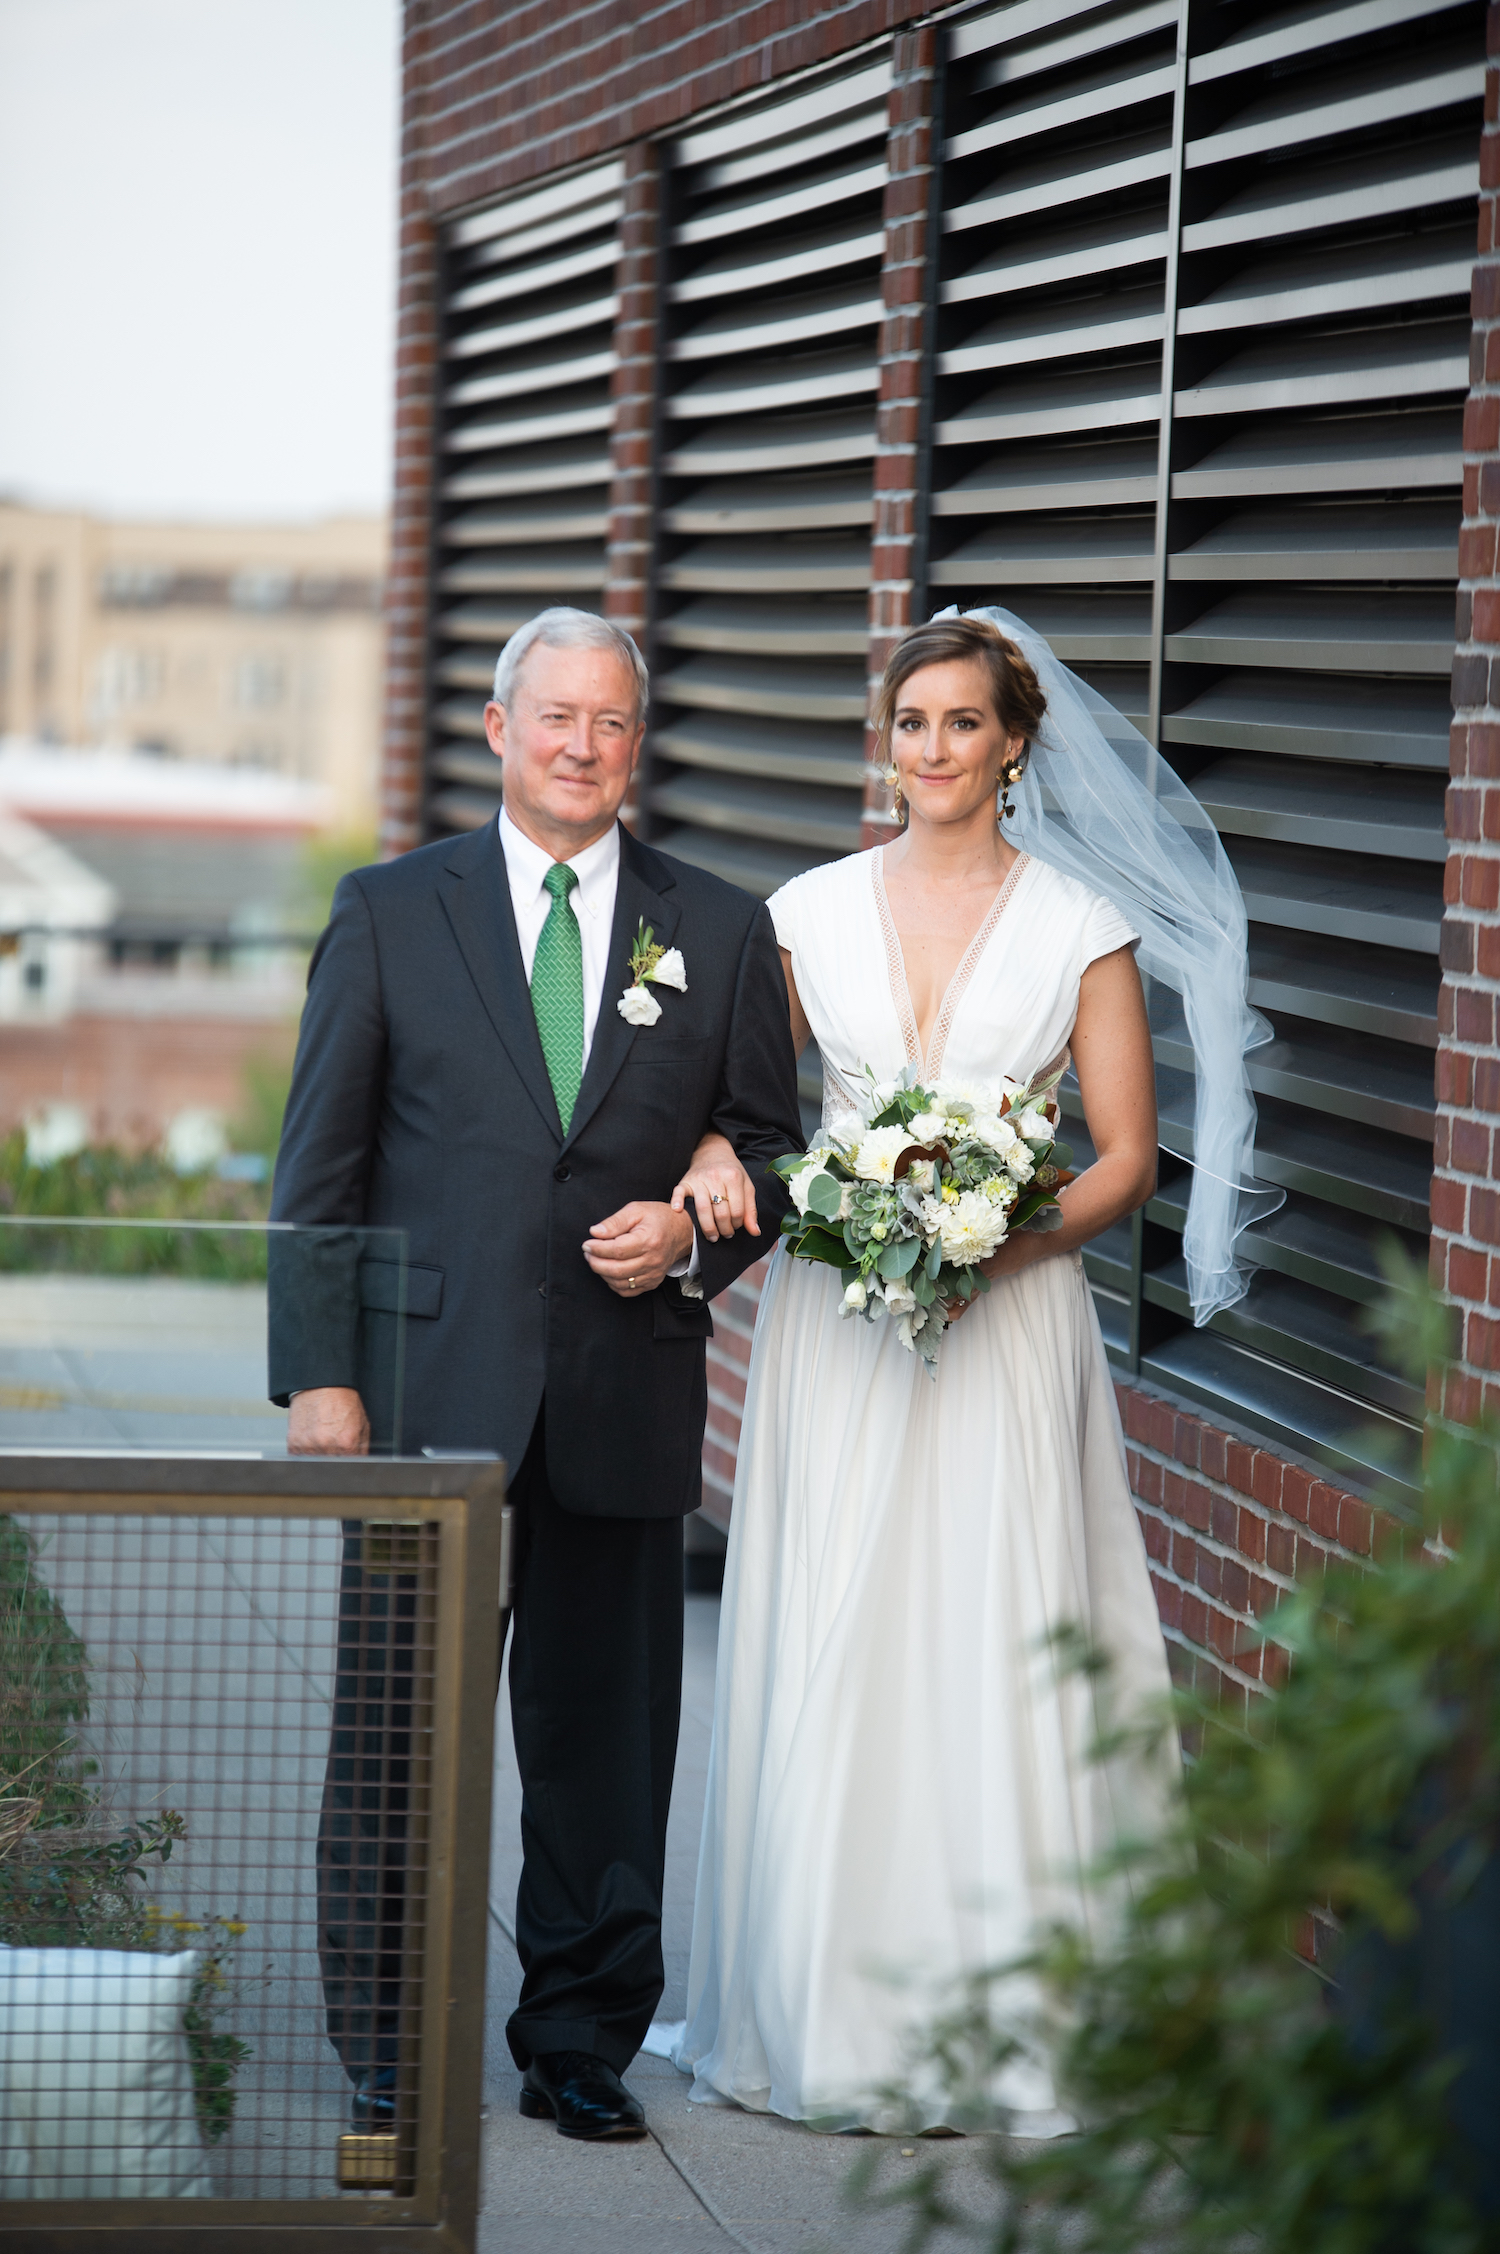 The-Line-DC-Fall-Wedding-Dog-Cake-Planner-Agriffin-events-00059